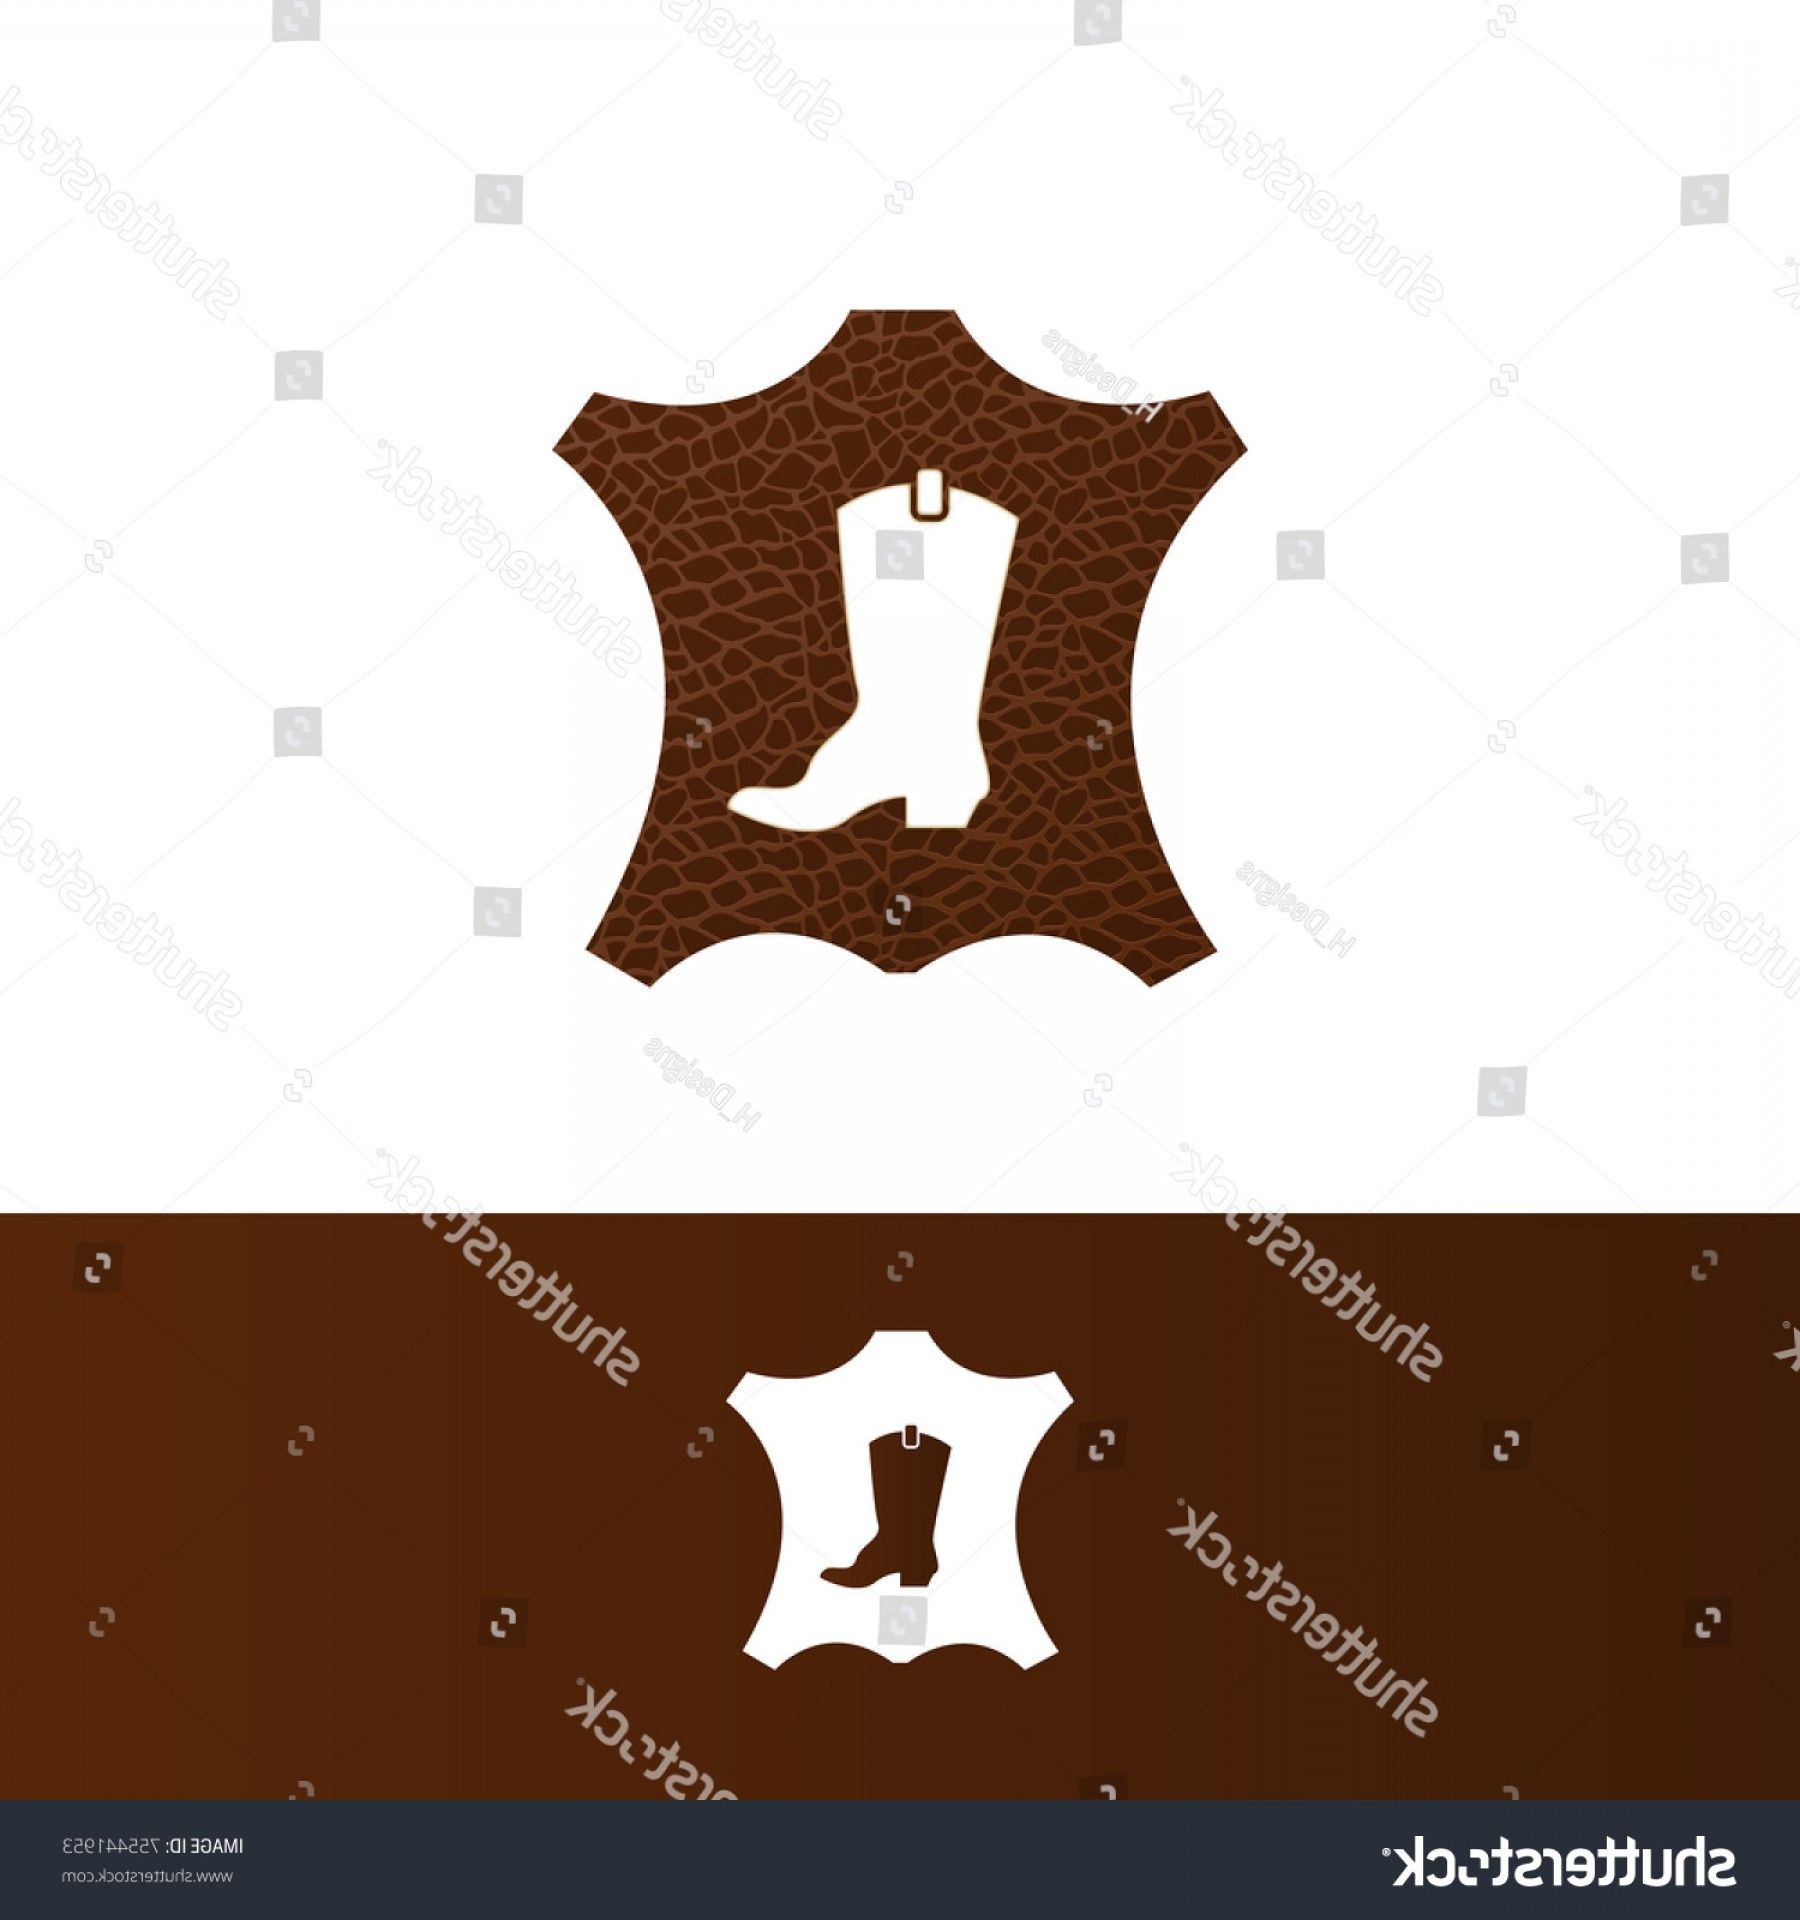 Illustrator Vector Format: Leather Patch Concept Designed Vector Illustrator